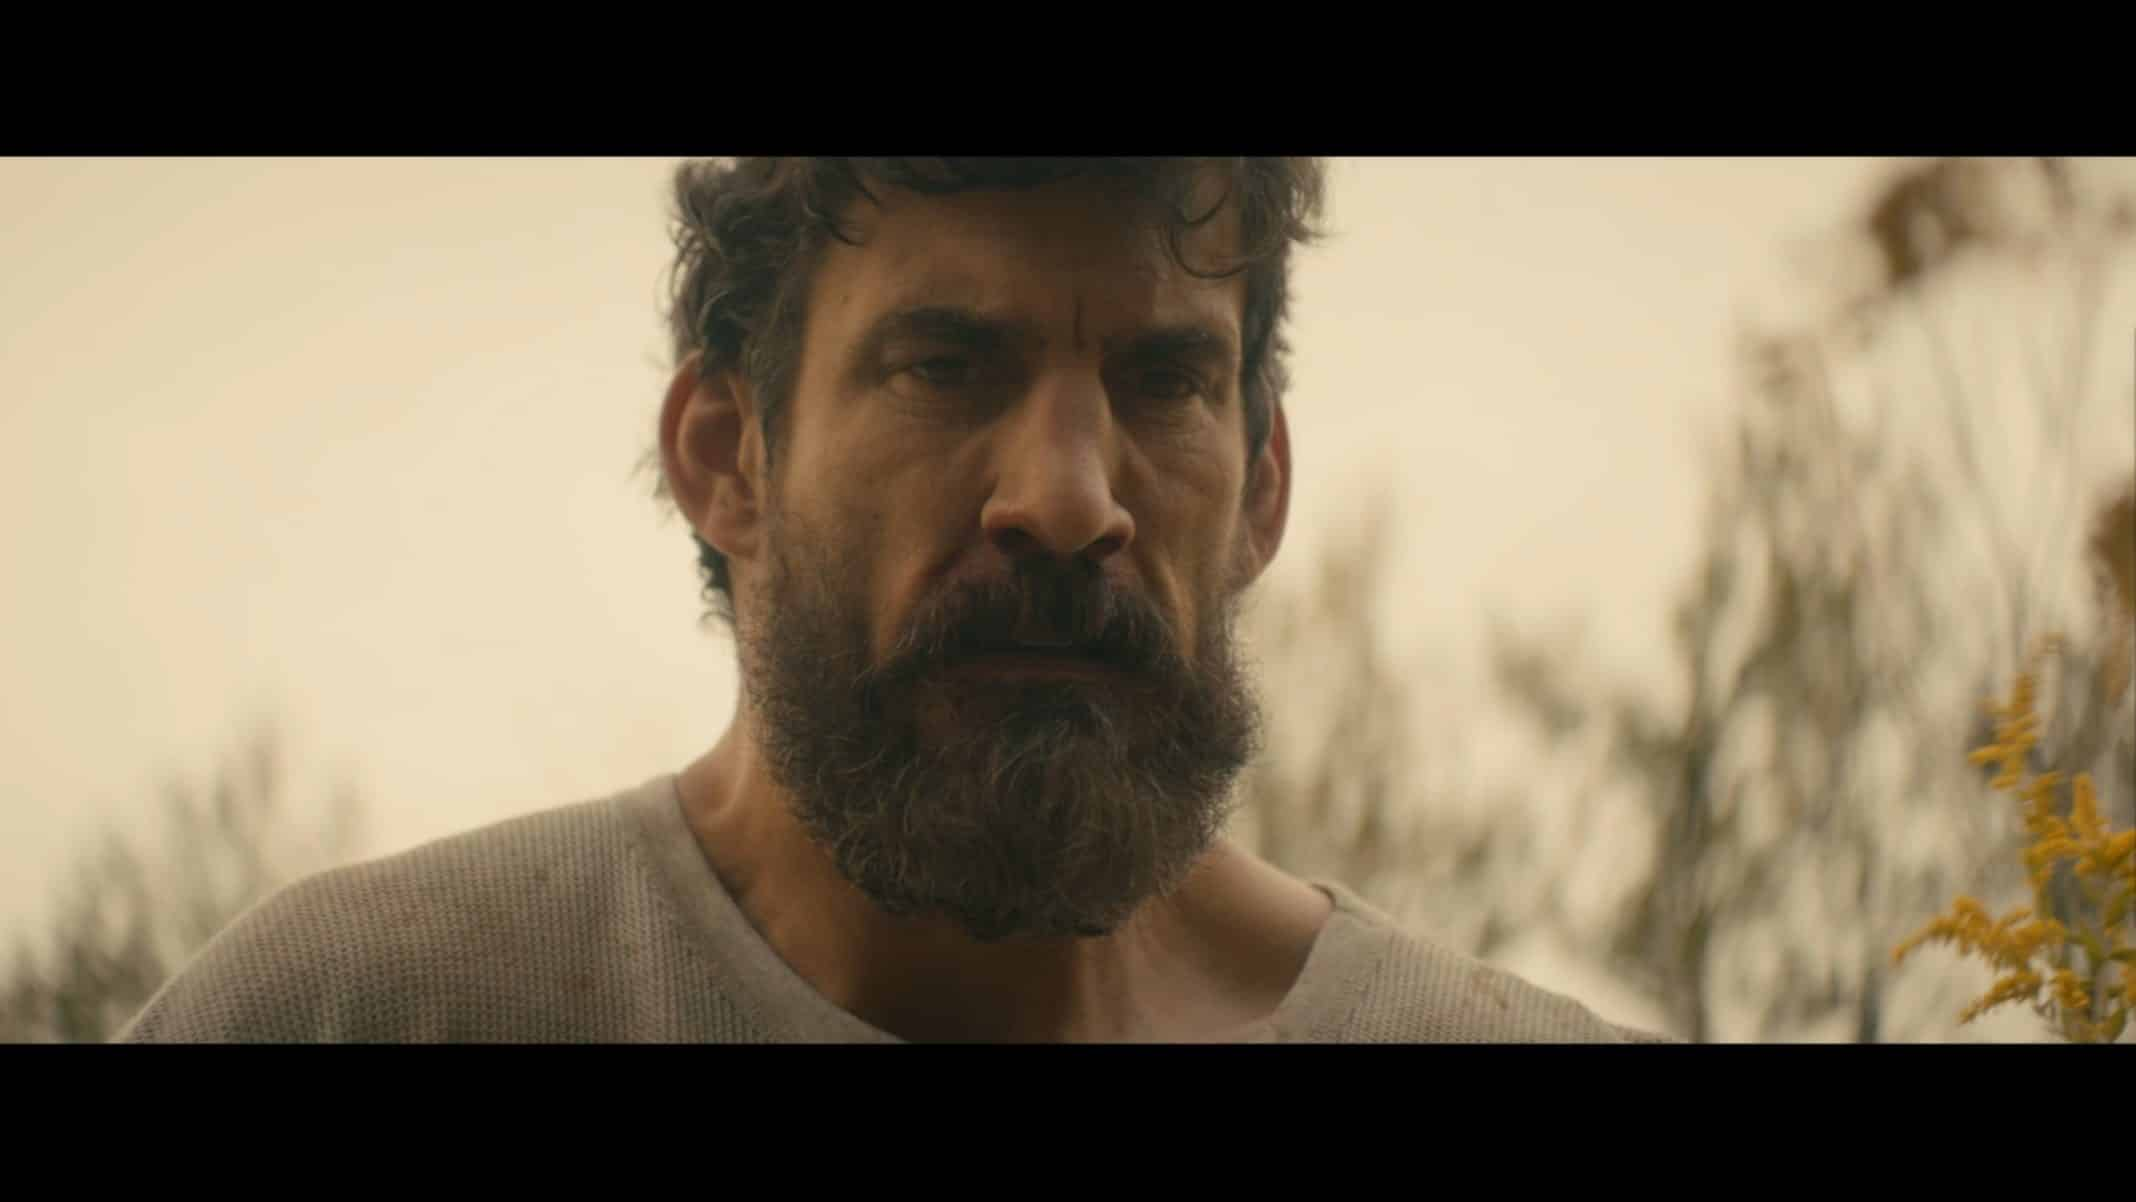 Apex (Robert Maillet) contemplating remaining aligned to Dominick.